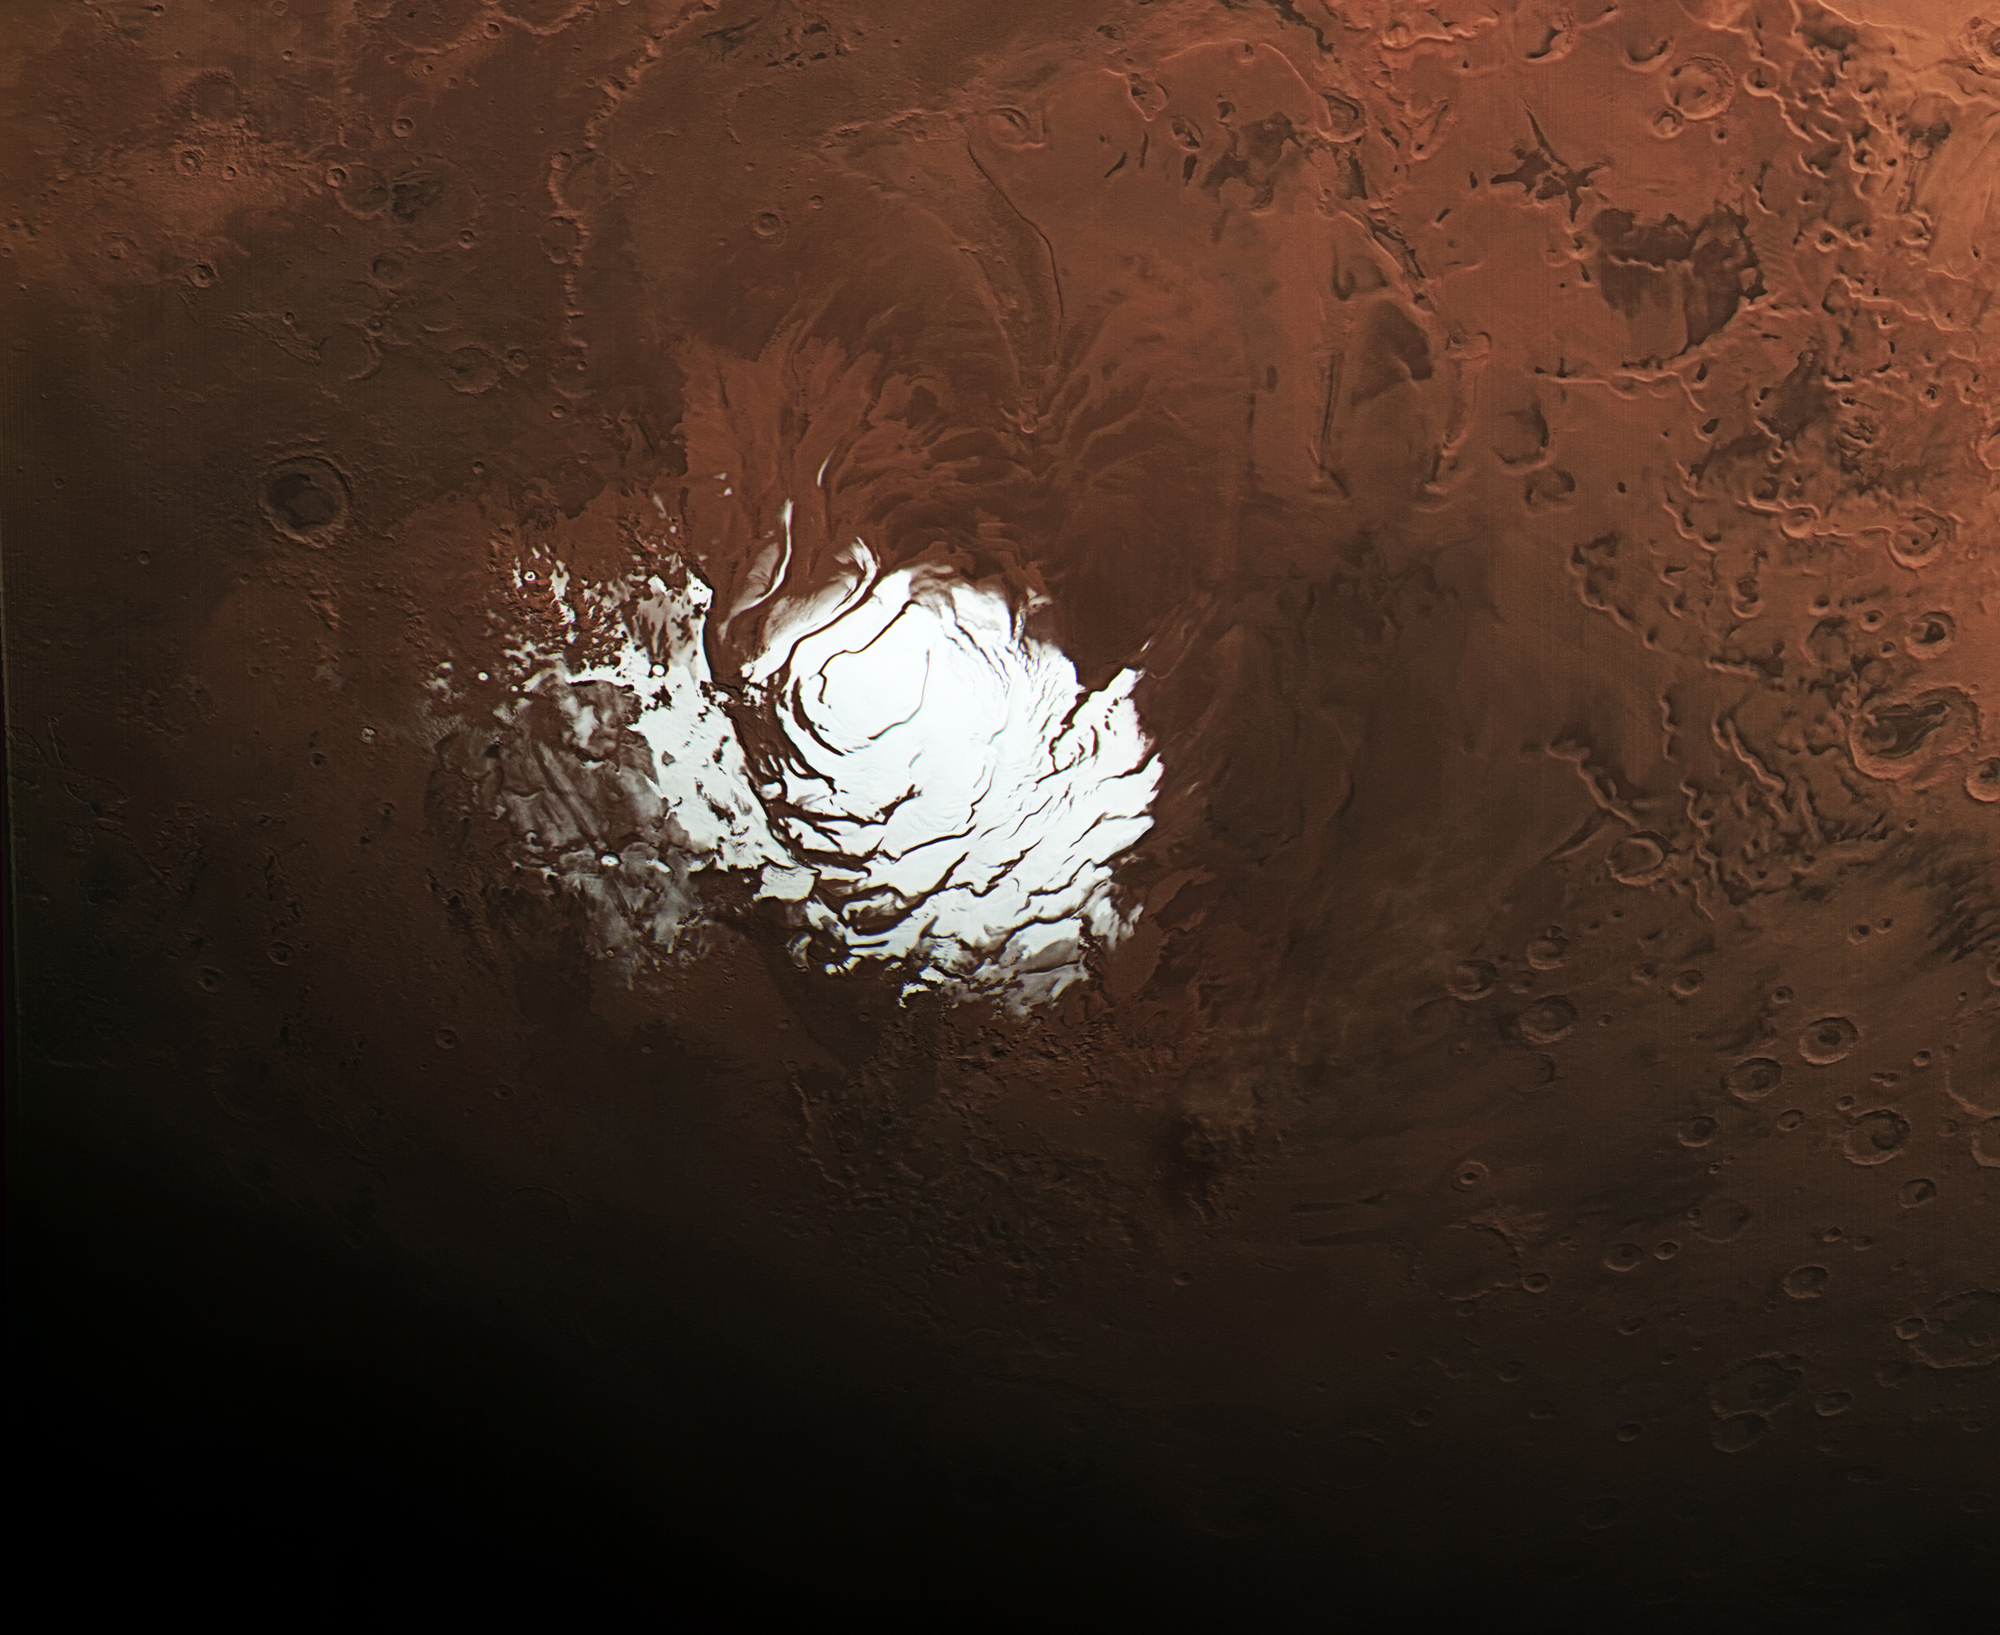 Mars' Mysterious South Pole Revealed in New Photo